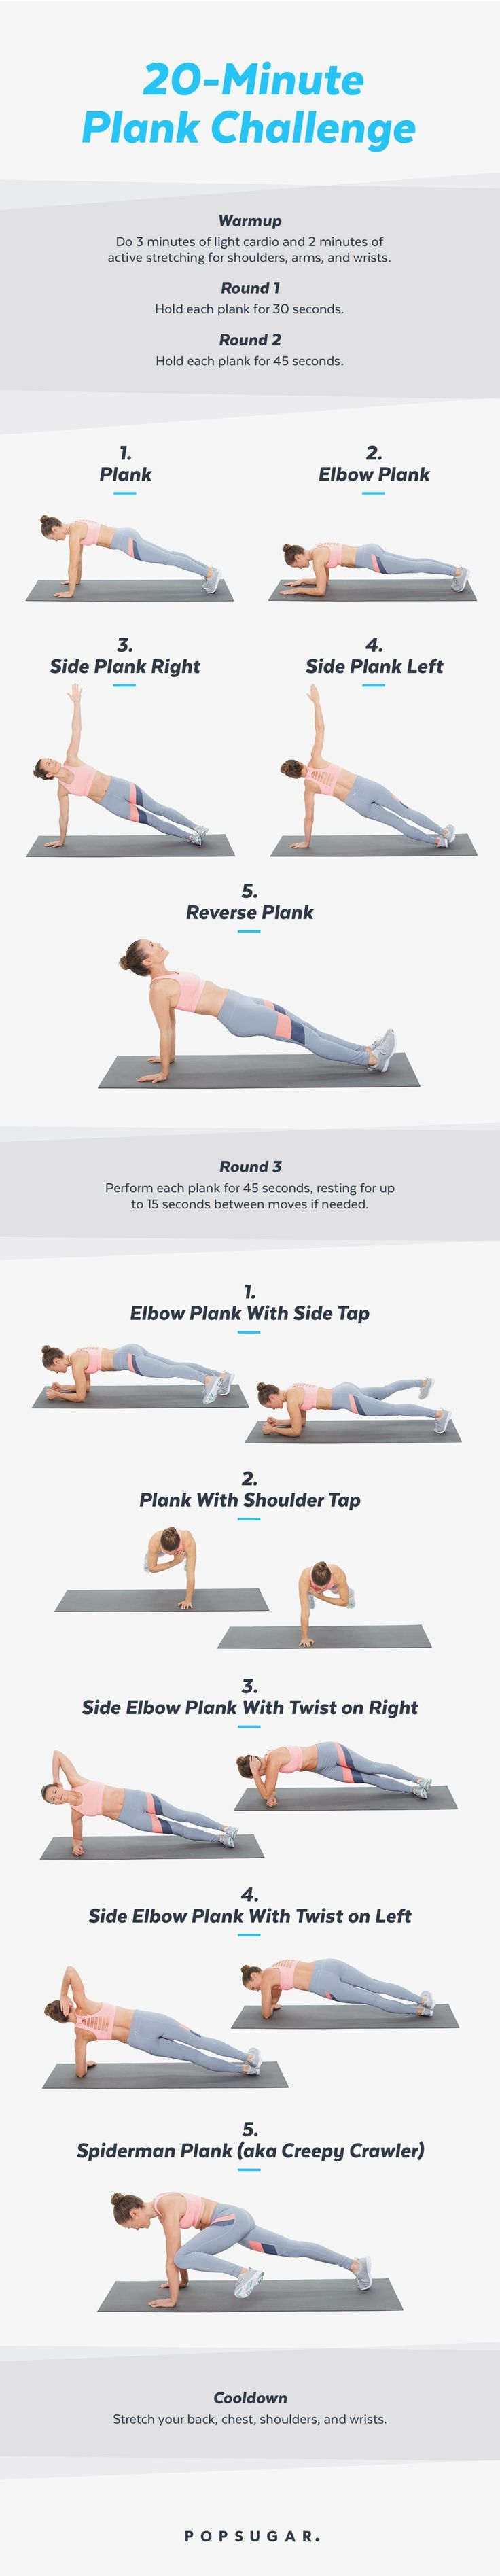 This plank challenge workout could be the key to toned arms and flat abs. It takes about 20 minutes (there are modifications for beginners) and will leave your arms feeling like jelly — in the best way possible.